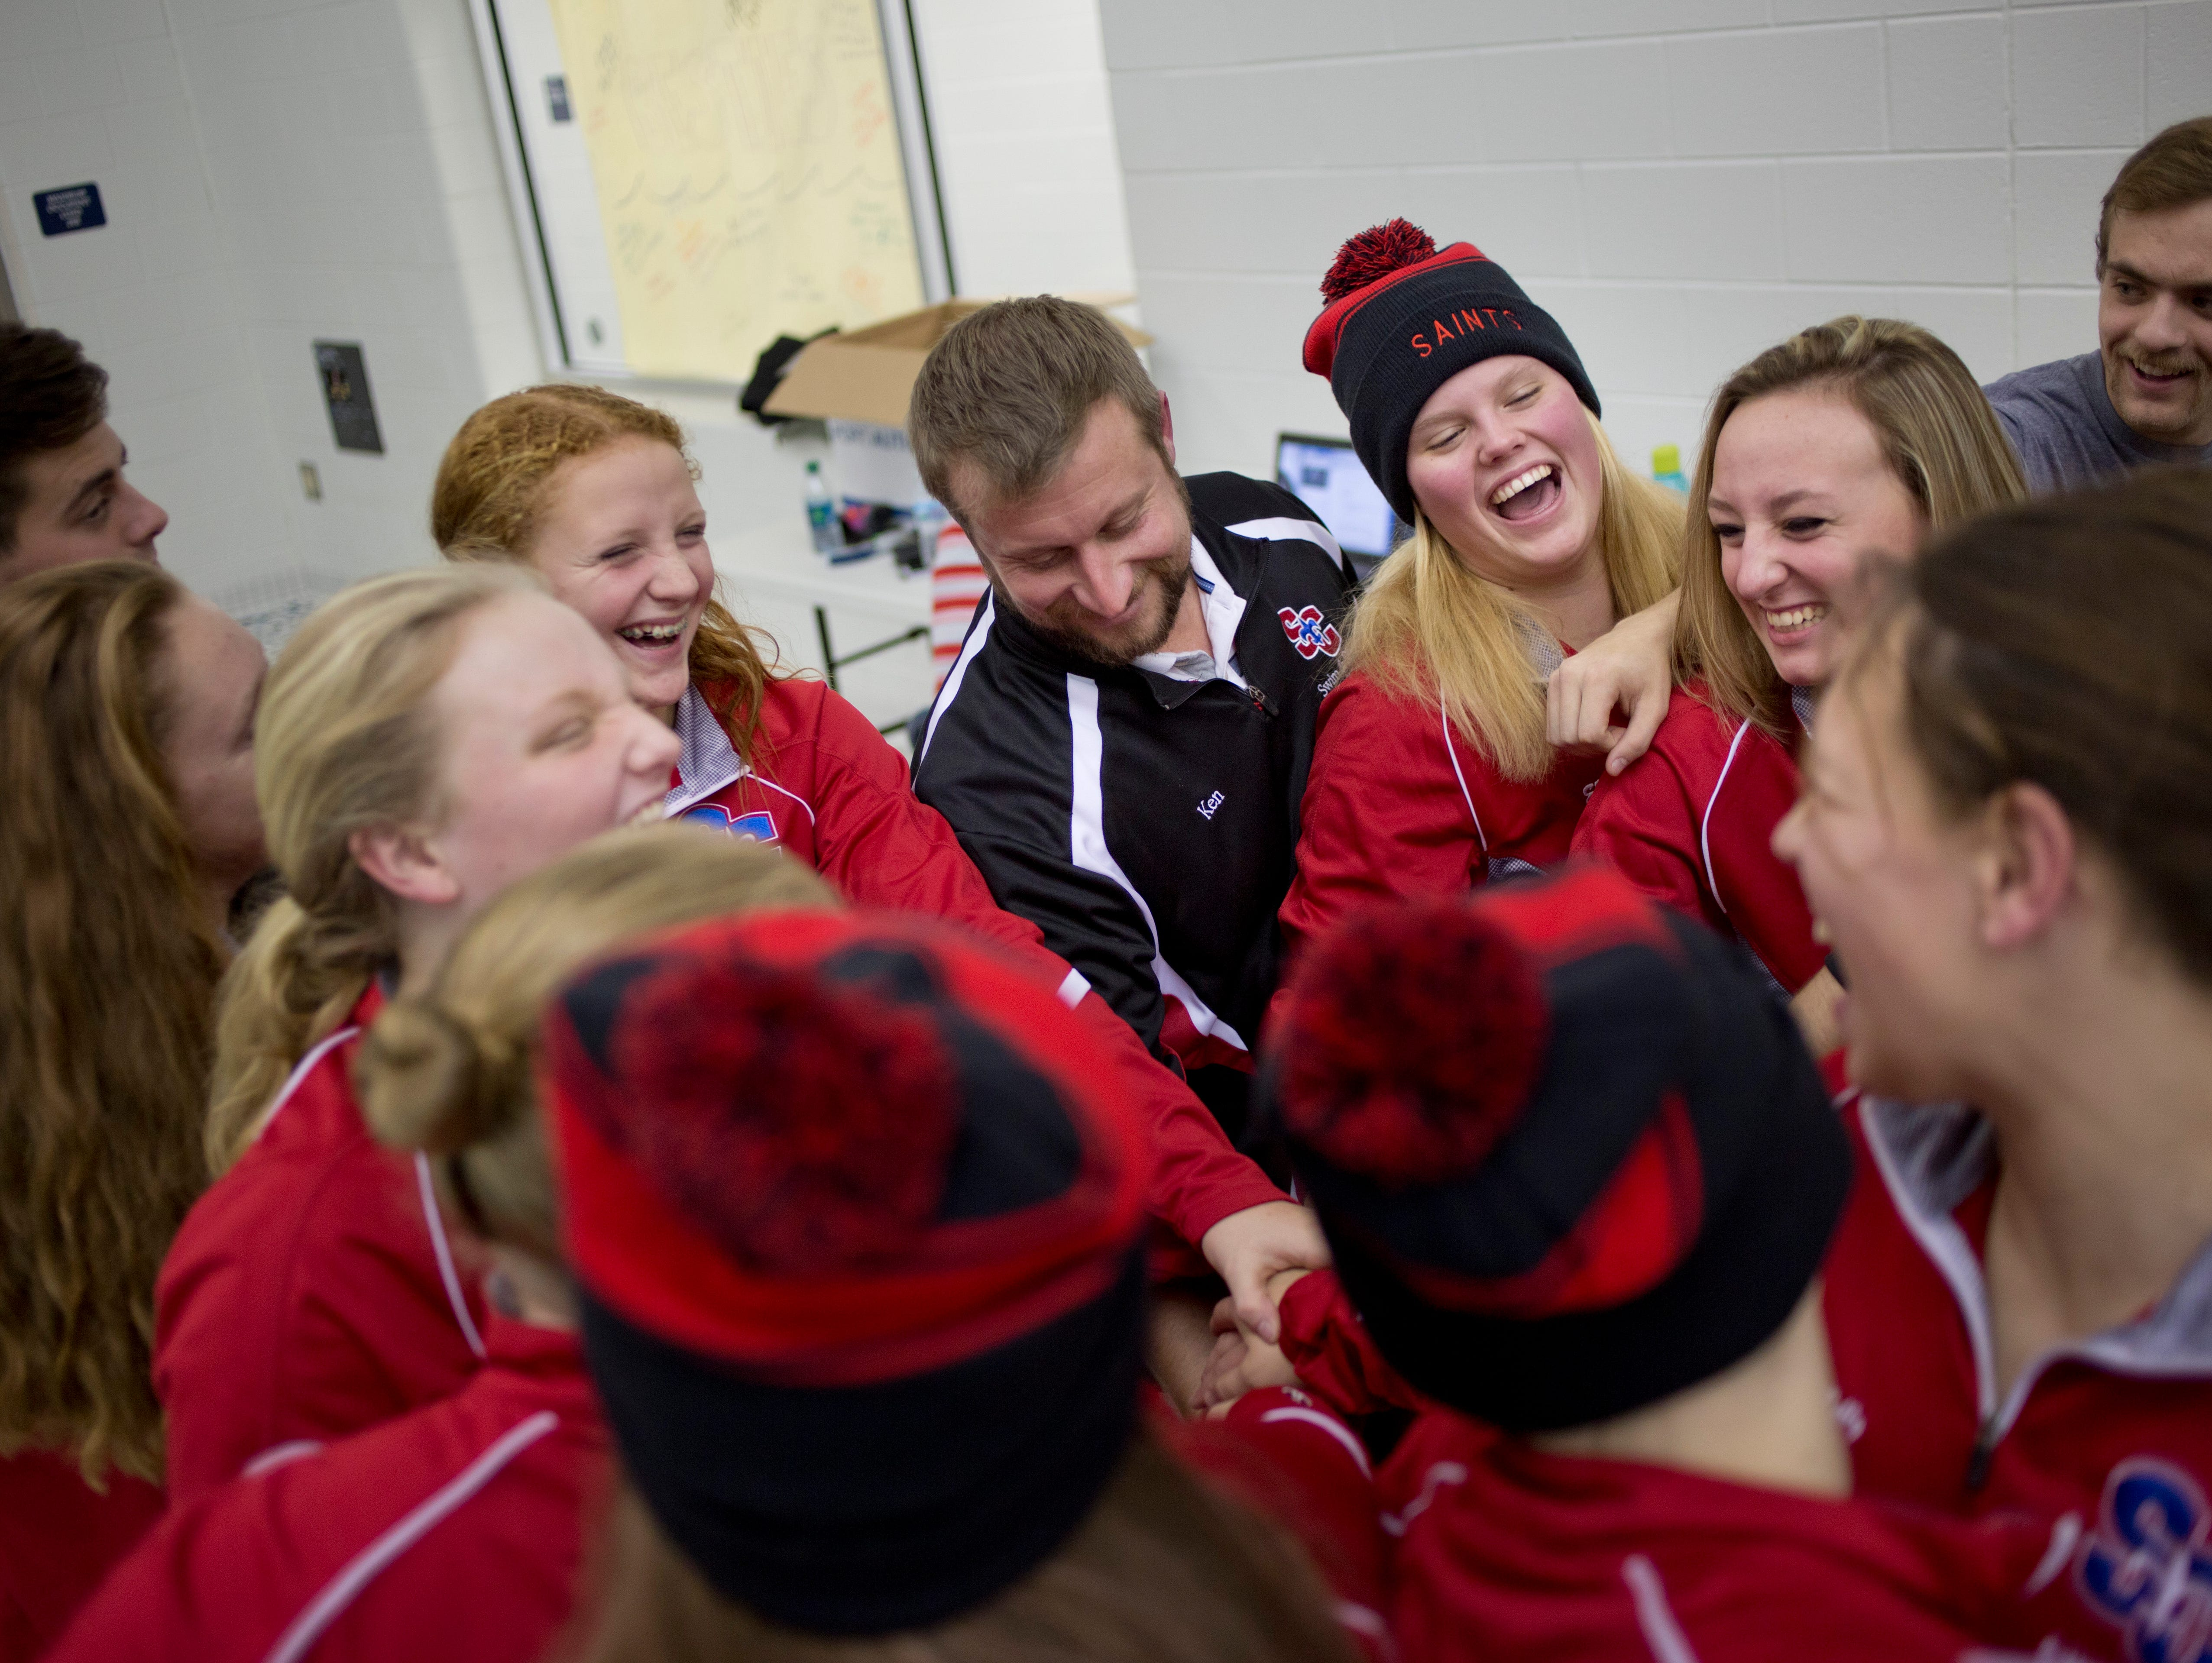 Players laugh as they put their hands in a huddle along with coach Ken Sygit during practice Wednesday, November 18, 2015 in Marysville.